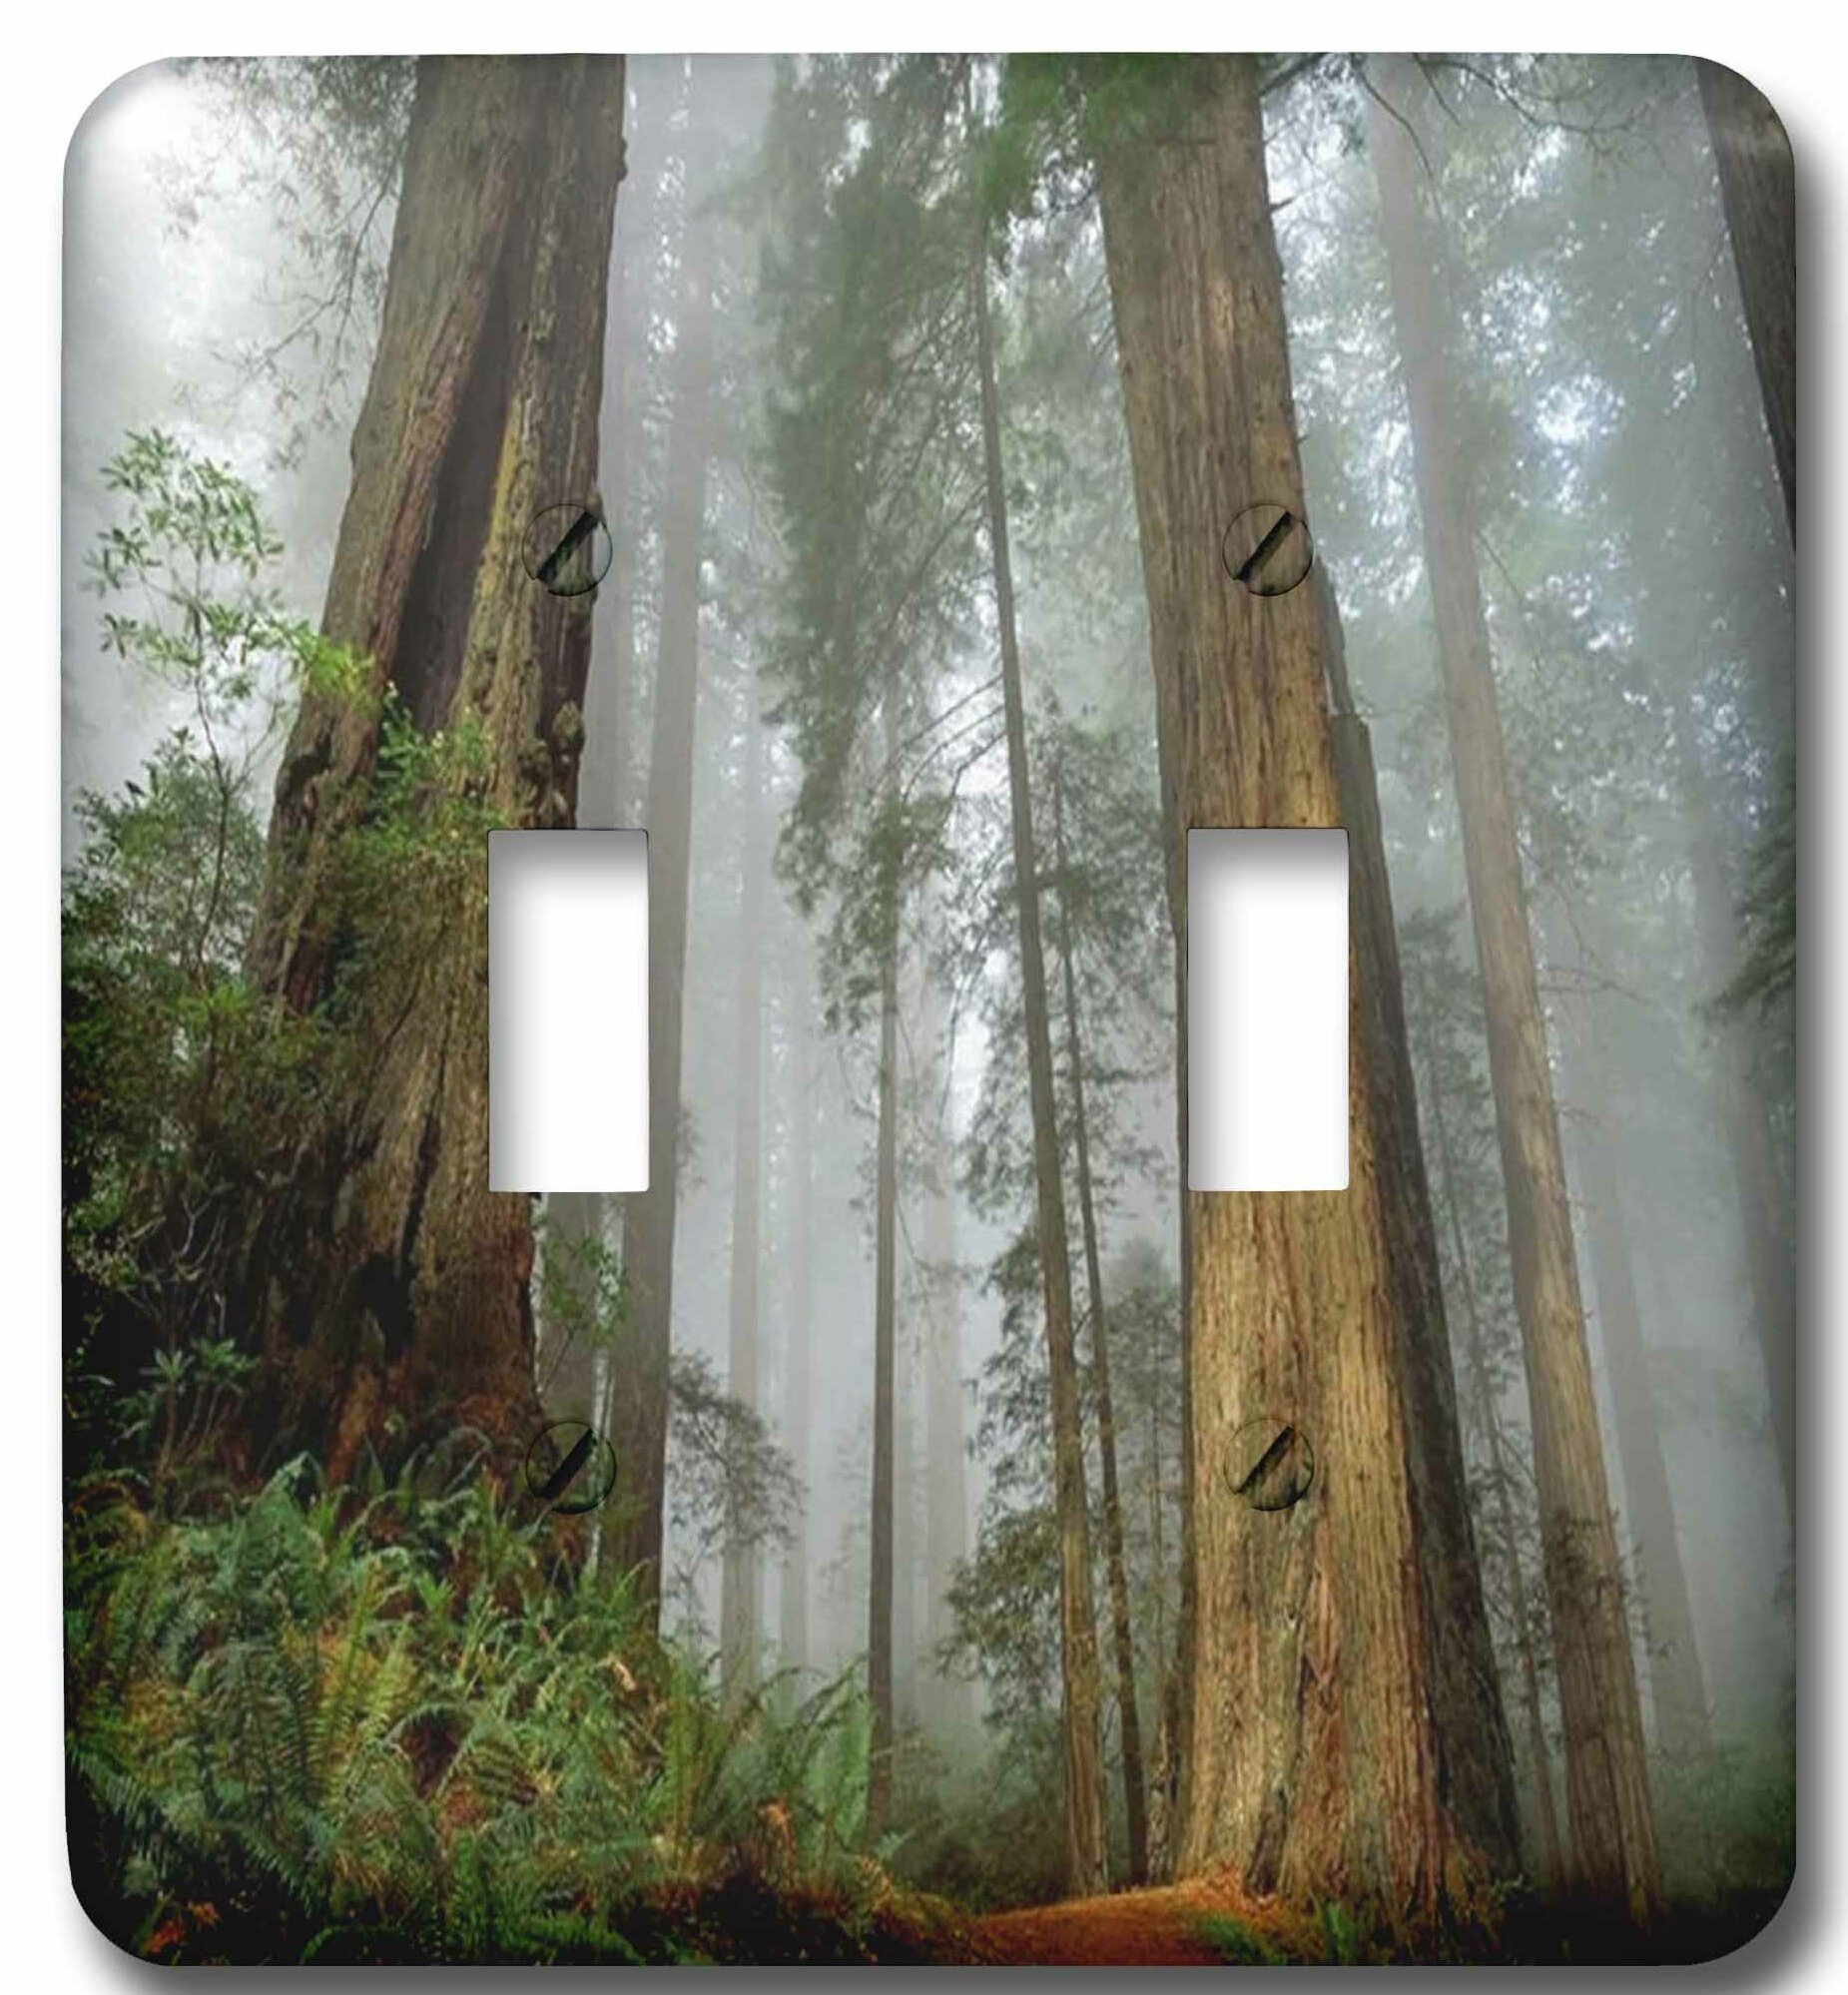 3drose Mist In The Forest 2 Gang Toggle Light Switch Wall Plate Wayfair